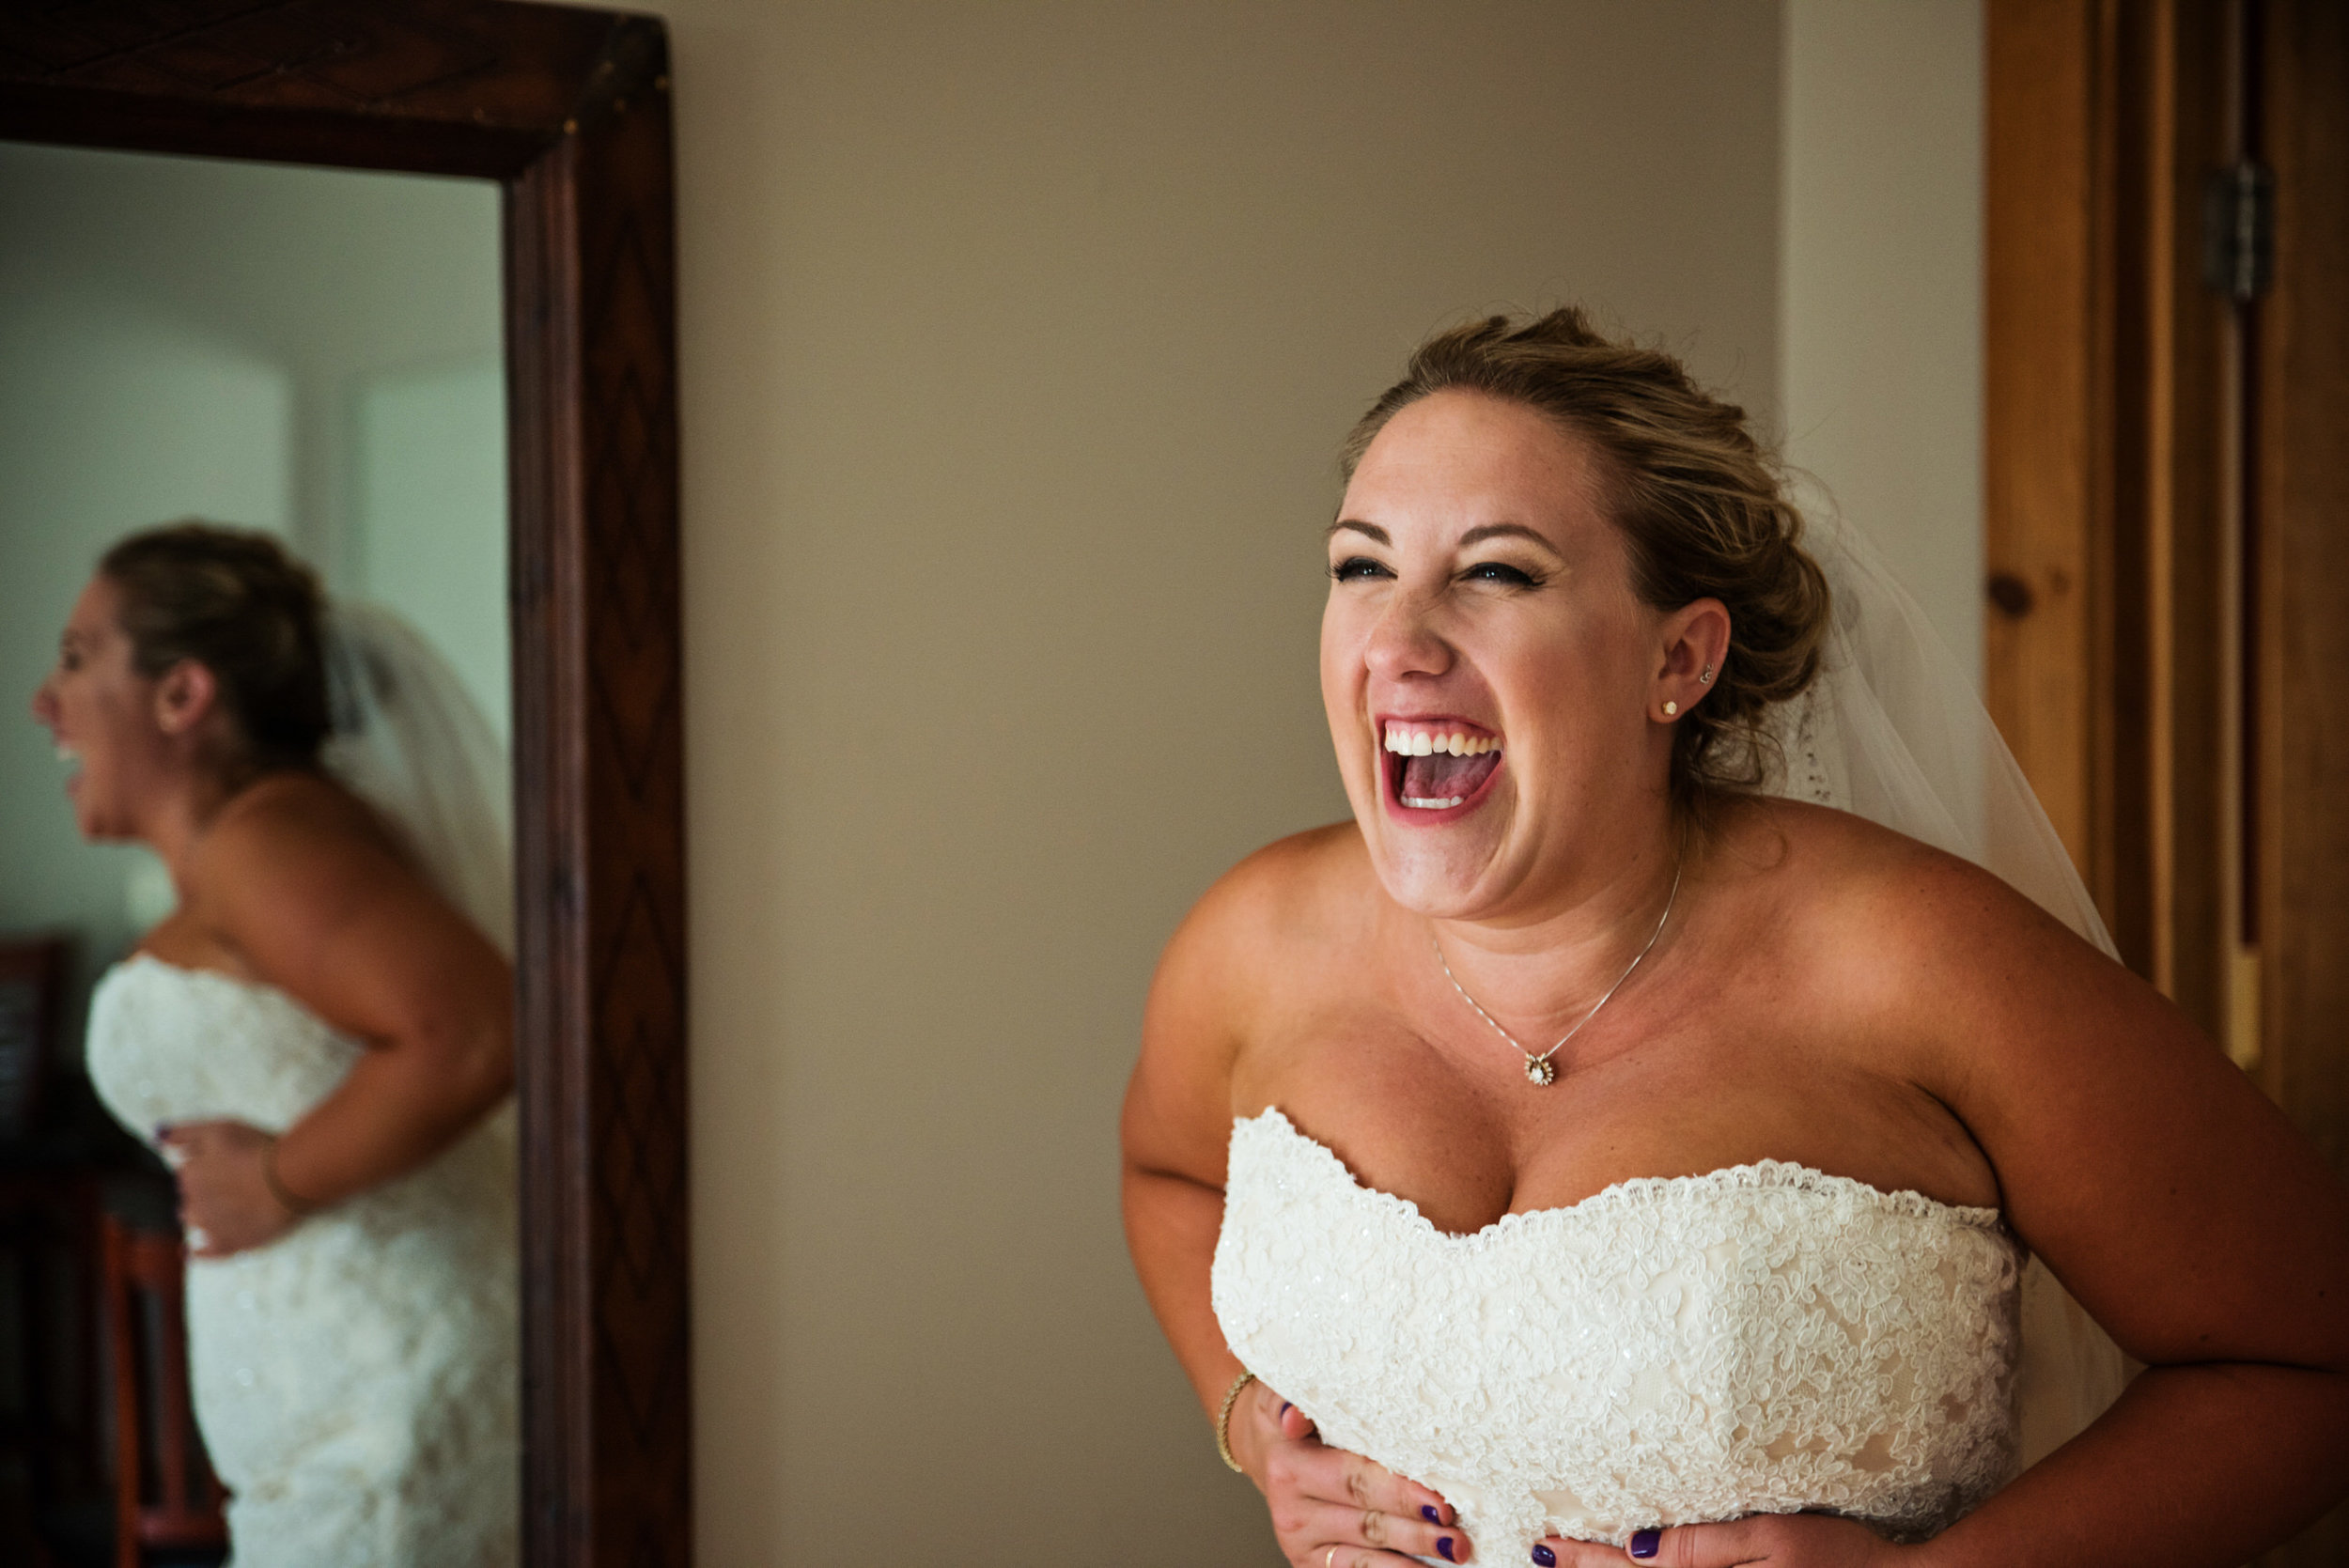 LiganoreWineryWedding-Amber&Andy-GettingReady-194.jpg